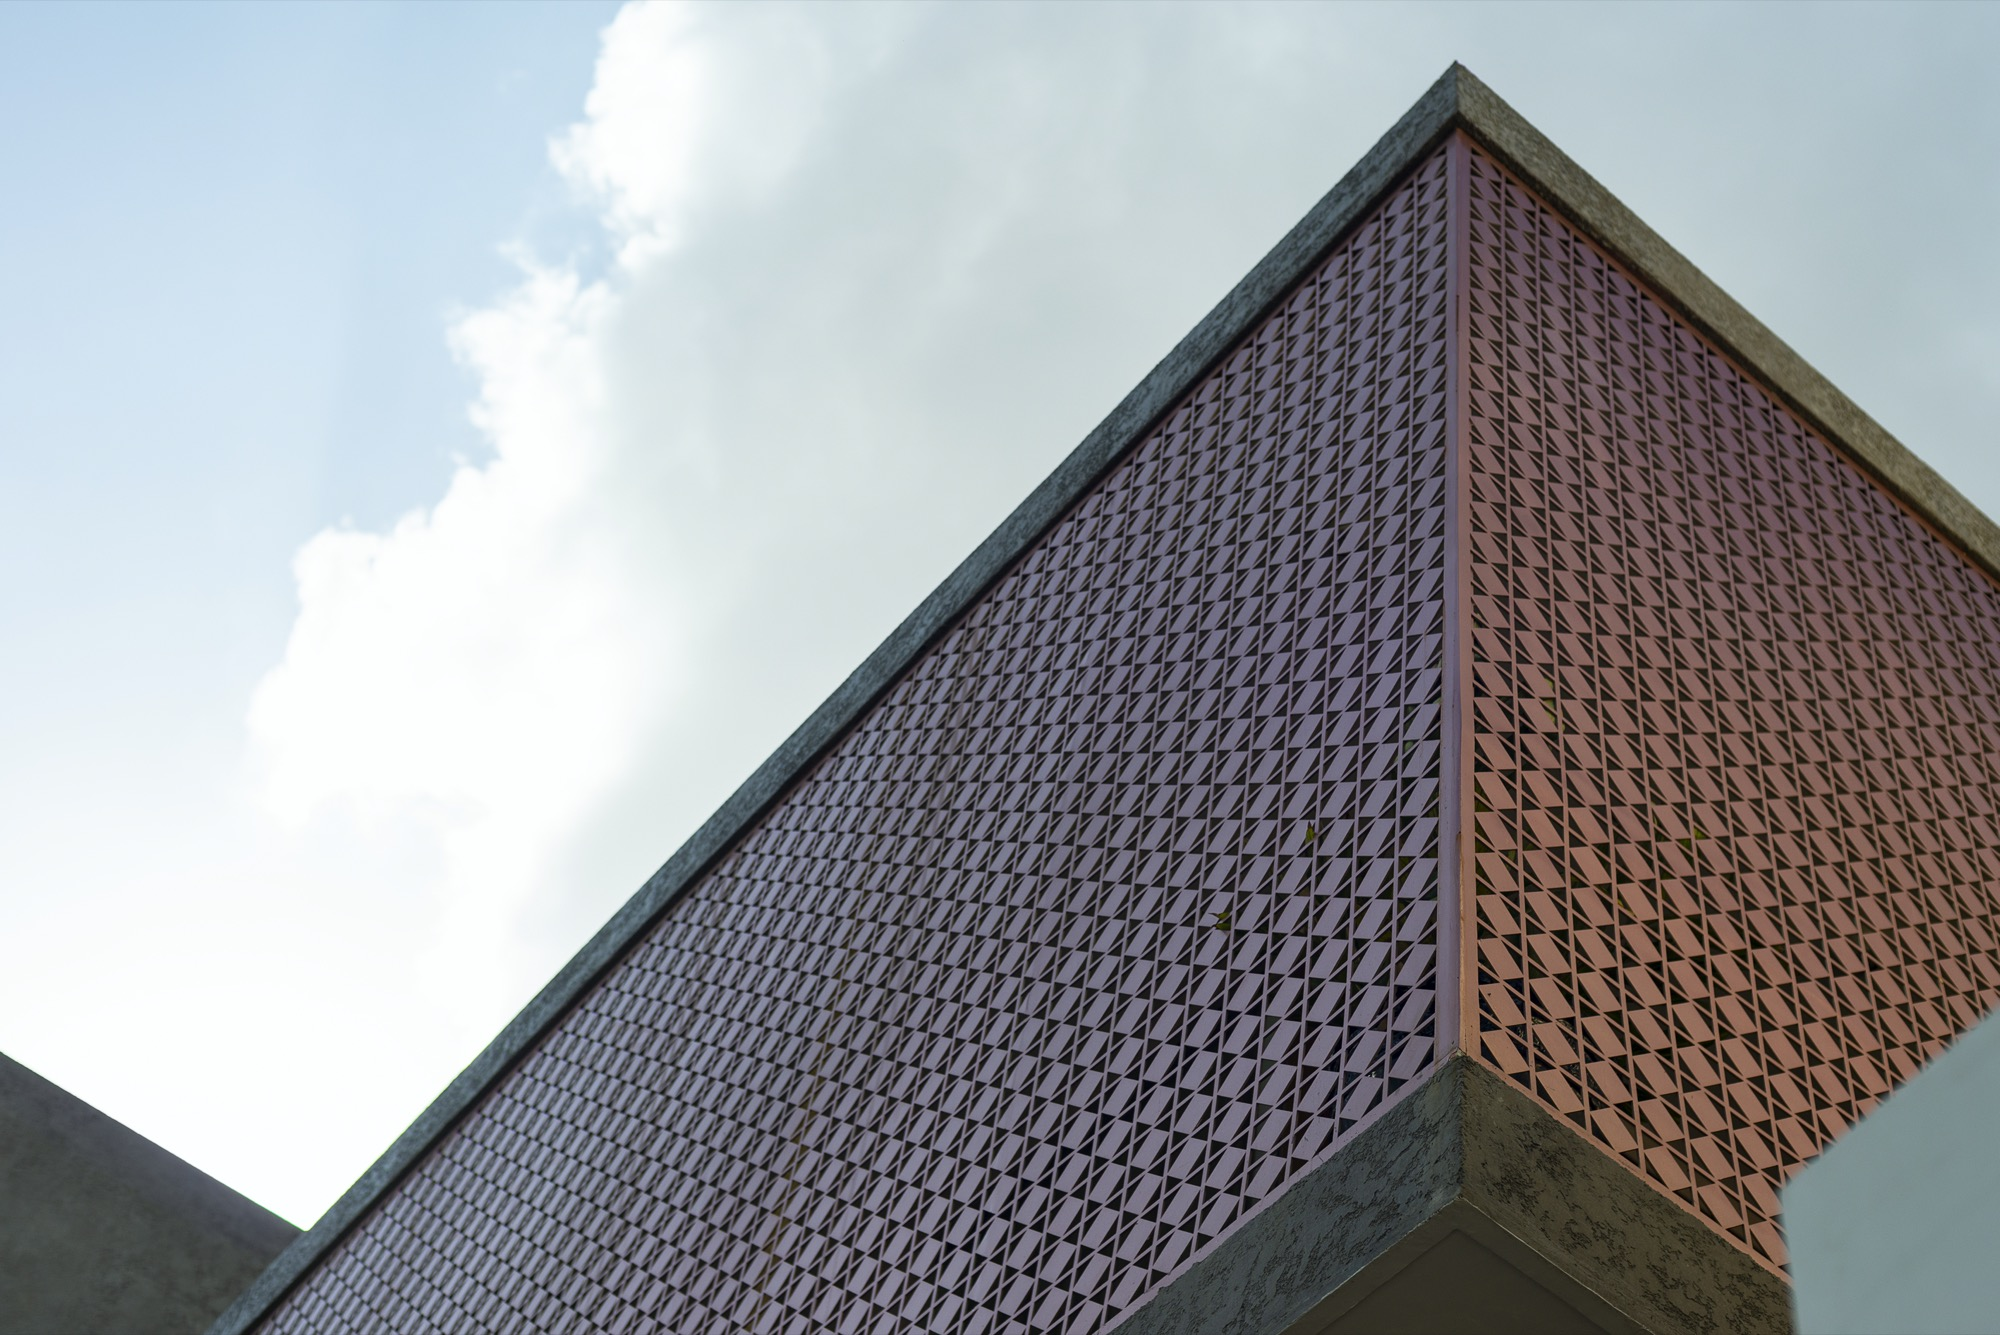 Hues of Copper House at Bengaluru, by Design Boulevard 9